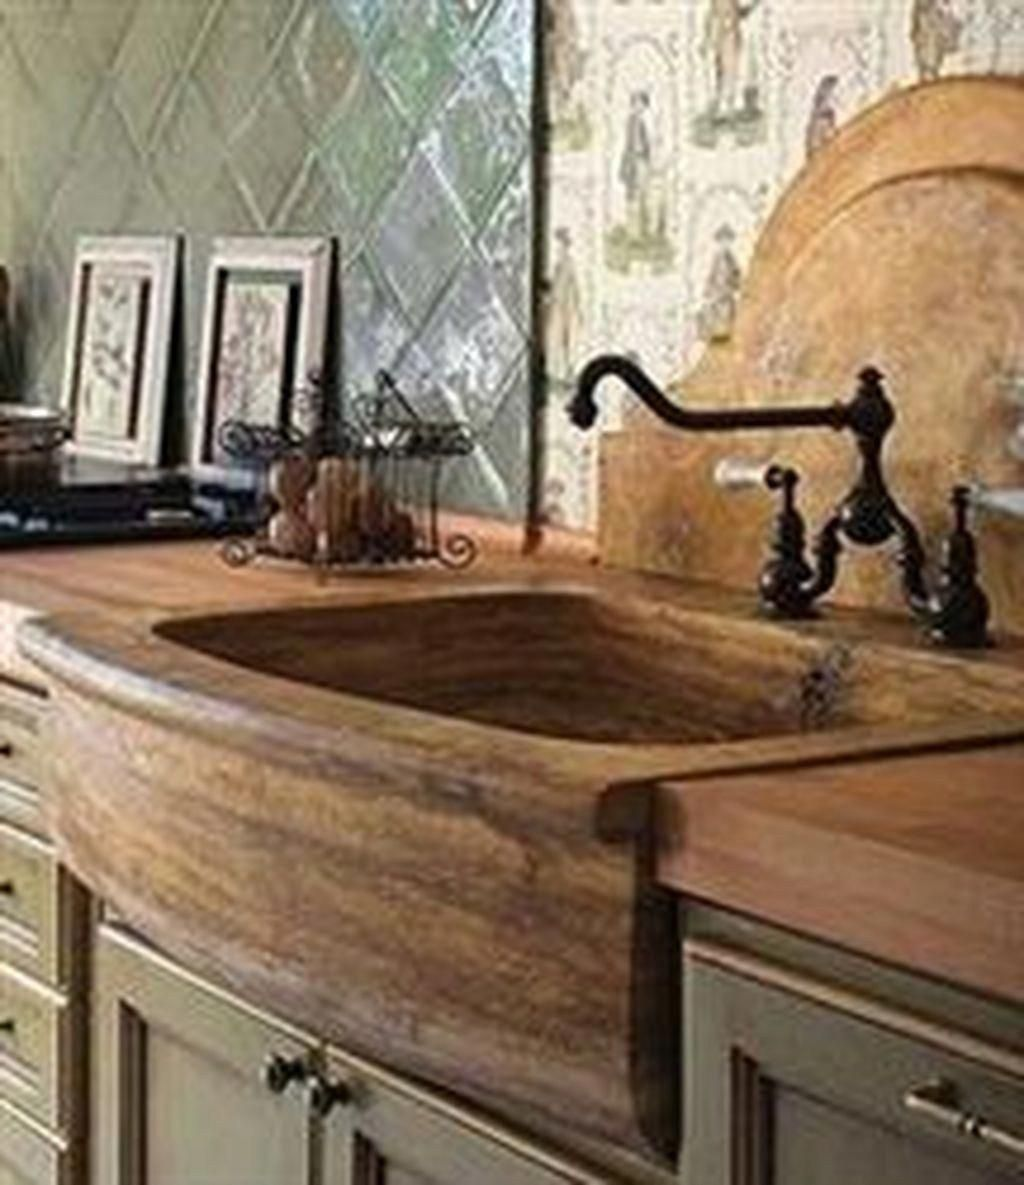 Stunning Kohler Farmhouse Sink Ideas To Improve Your